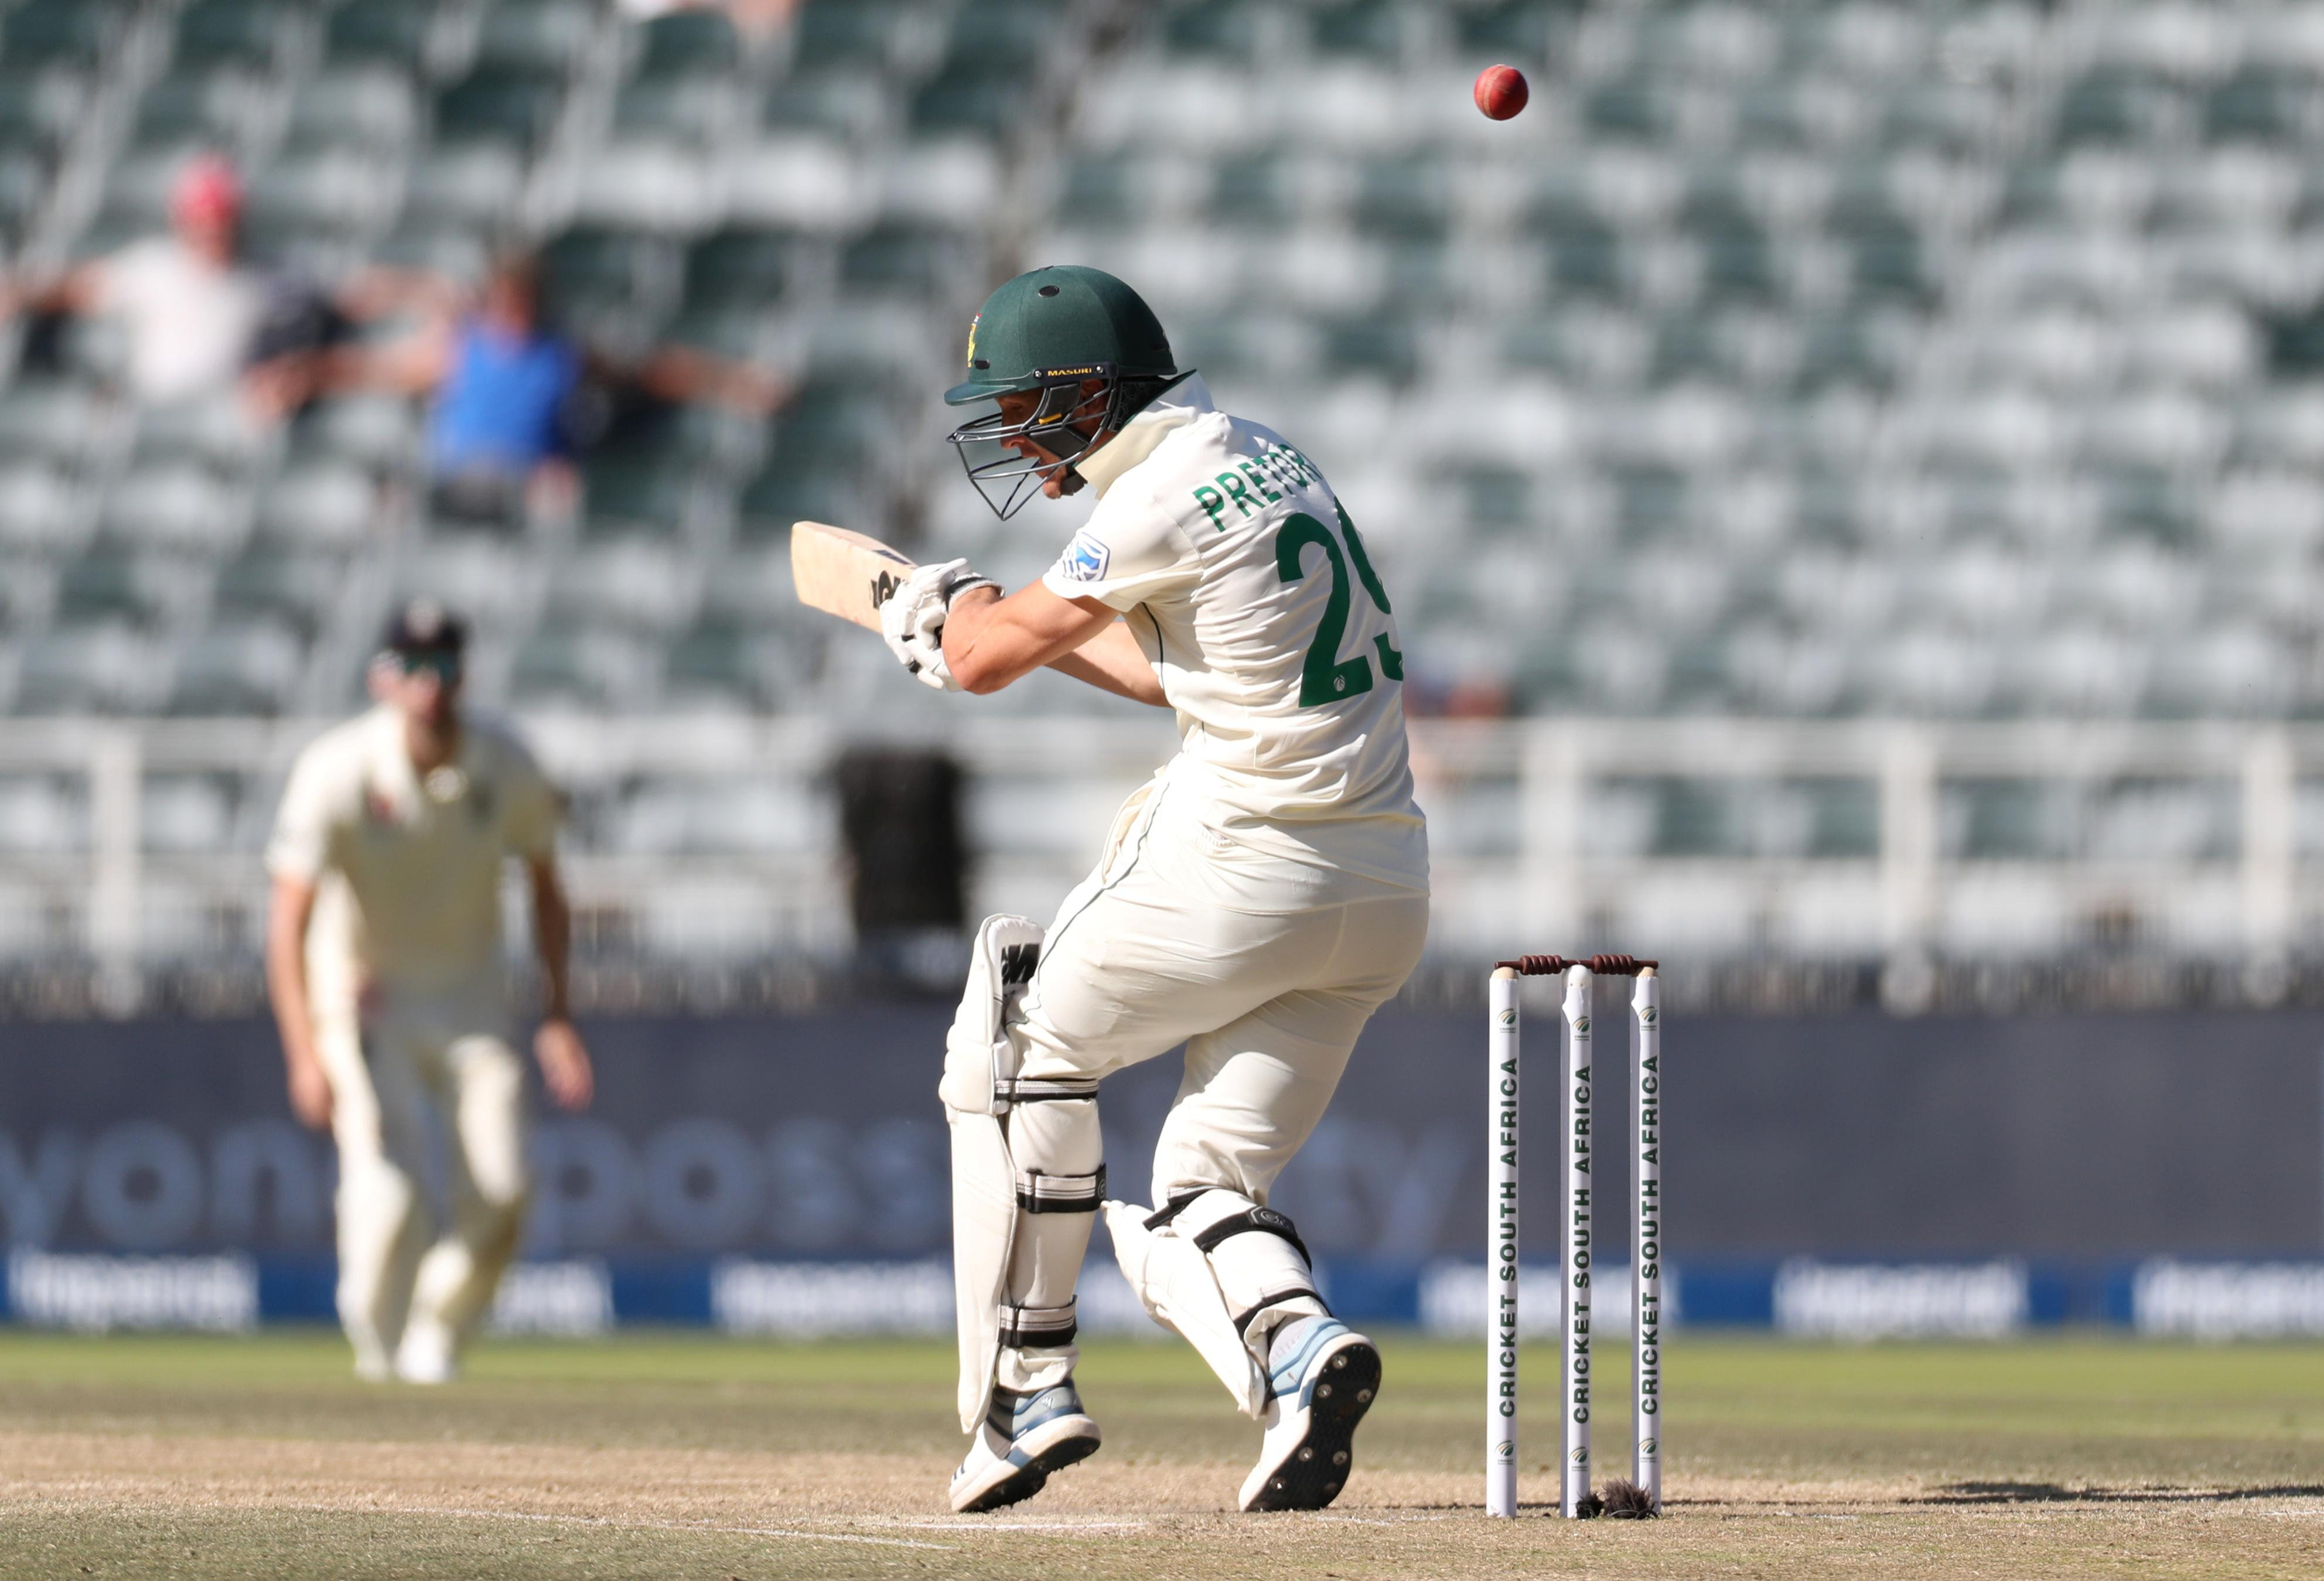 England beat South Africa by 191 runs to take series 3-1